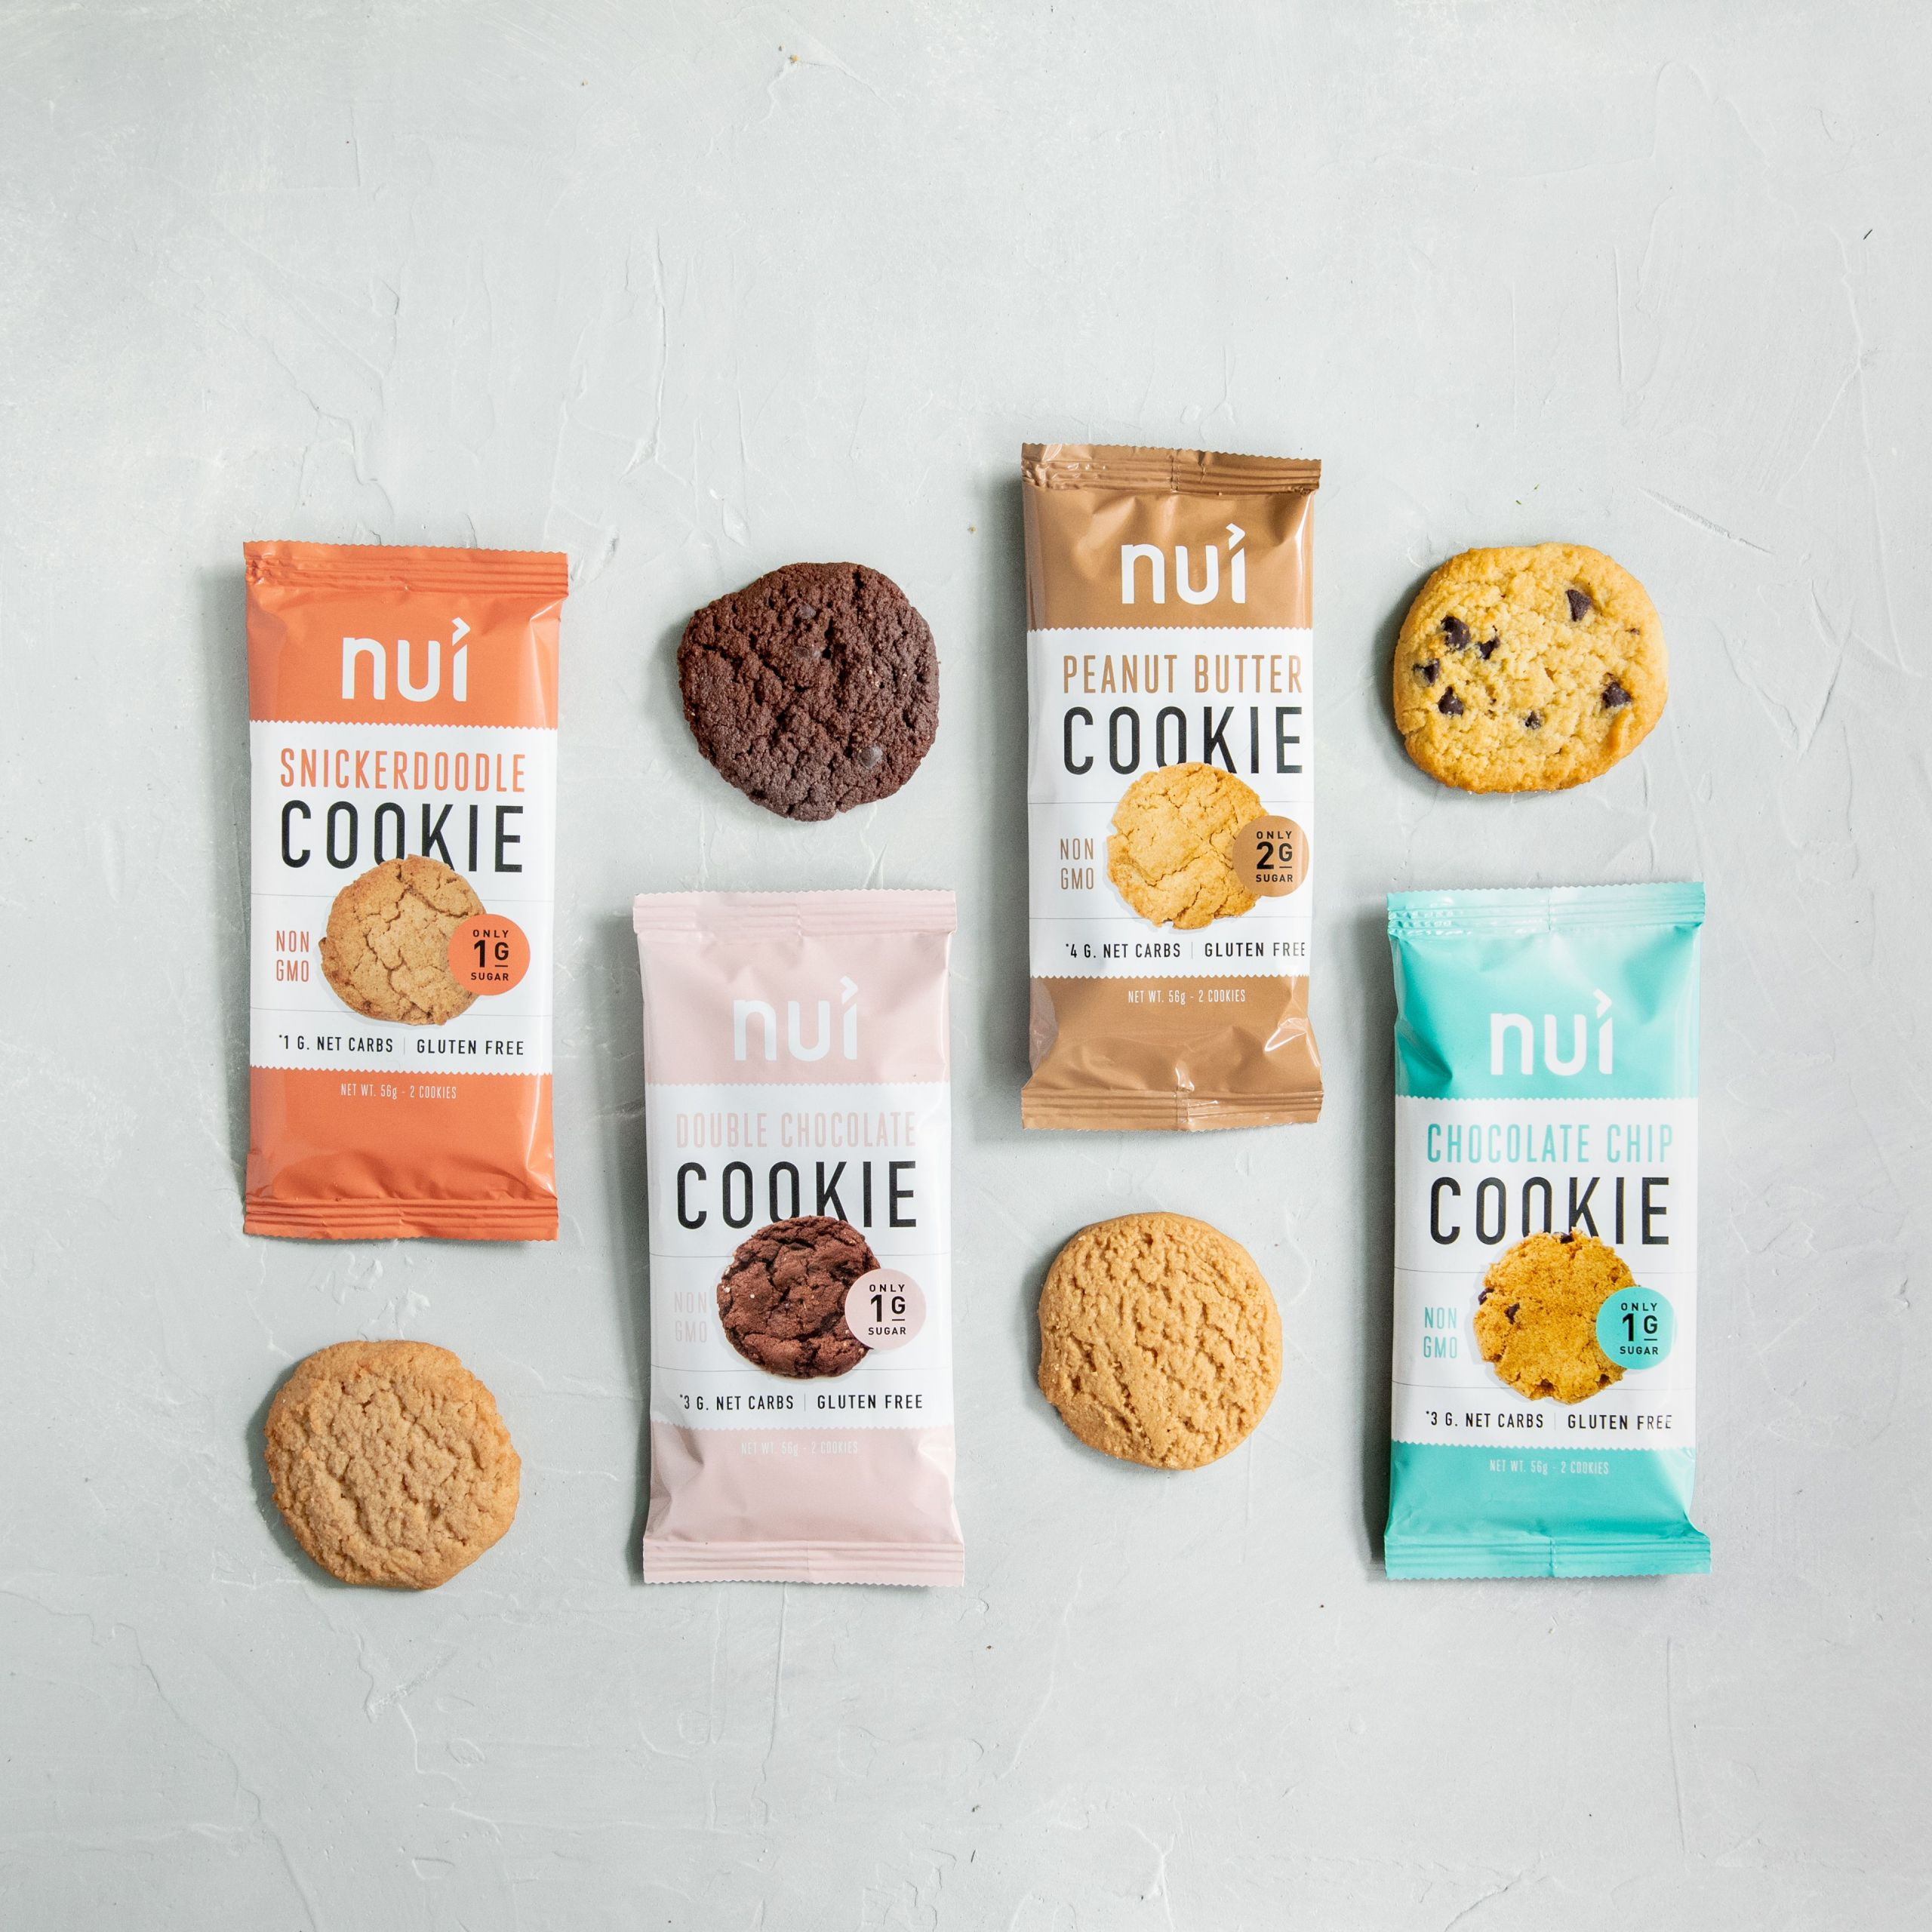 Leclerc Produits Beau Keto Cookies E In All Flavors It S the Treat without the Of 39 Charmant Leclerc Produits